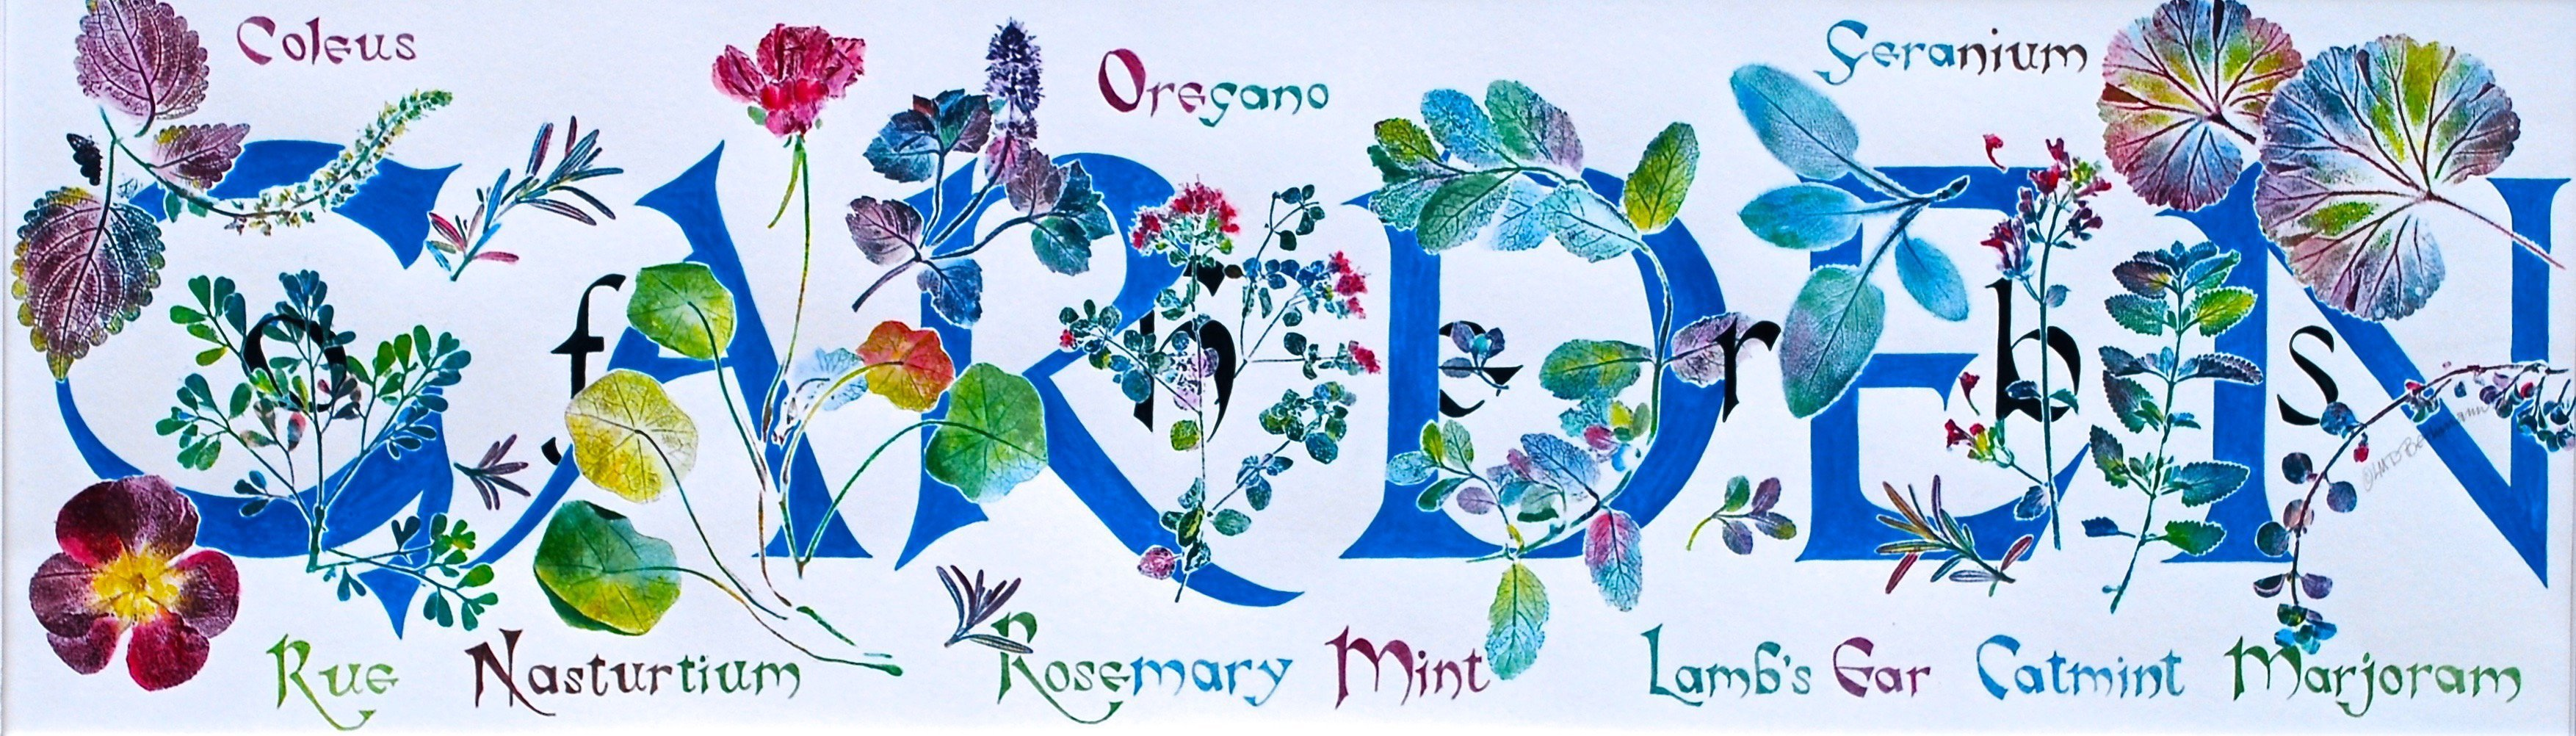 LauraBethmann_Garden_Ink_&_Watercolor_Nature_Print_Painting_Hand_Lettering_8x27